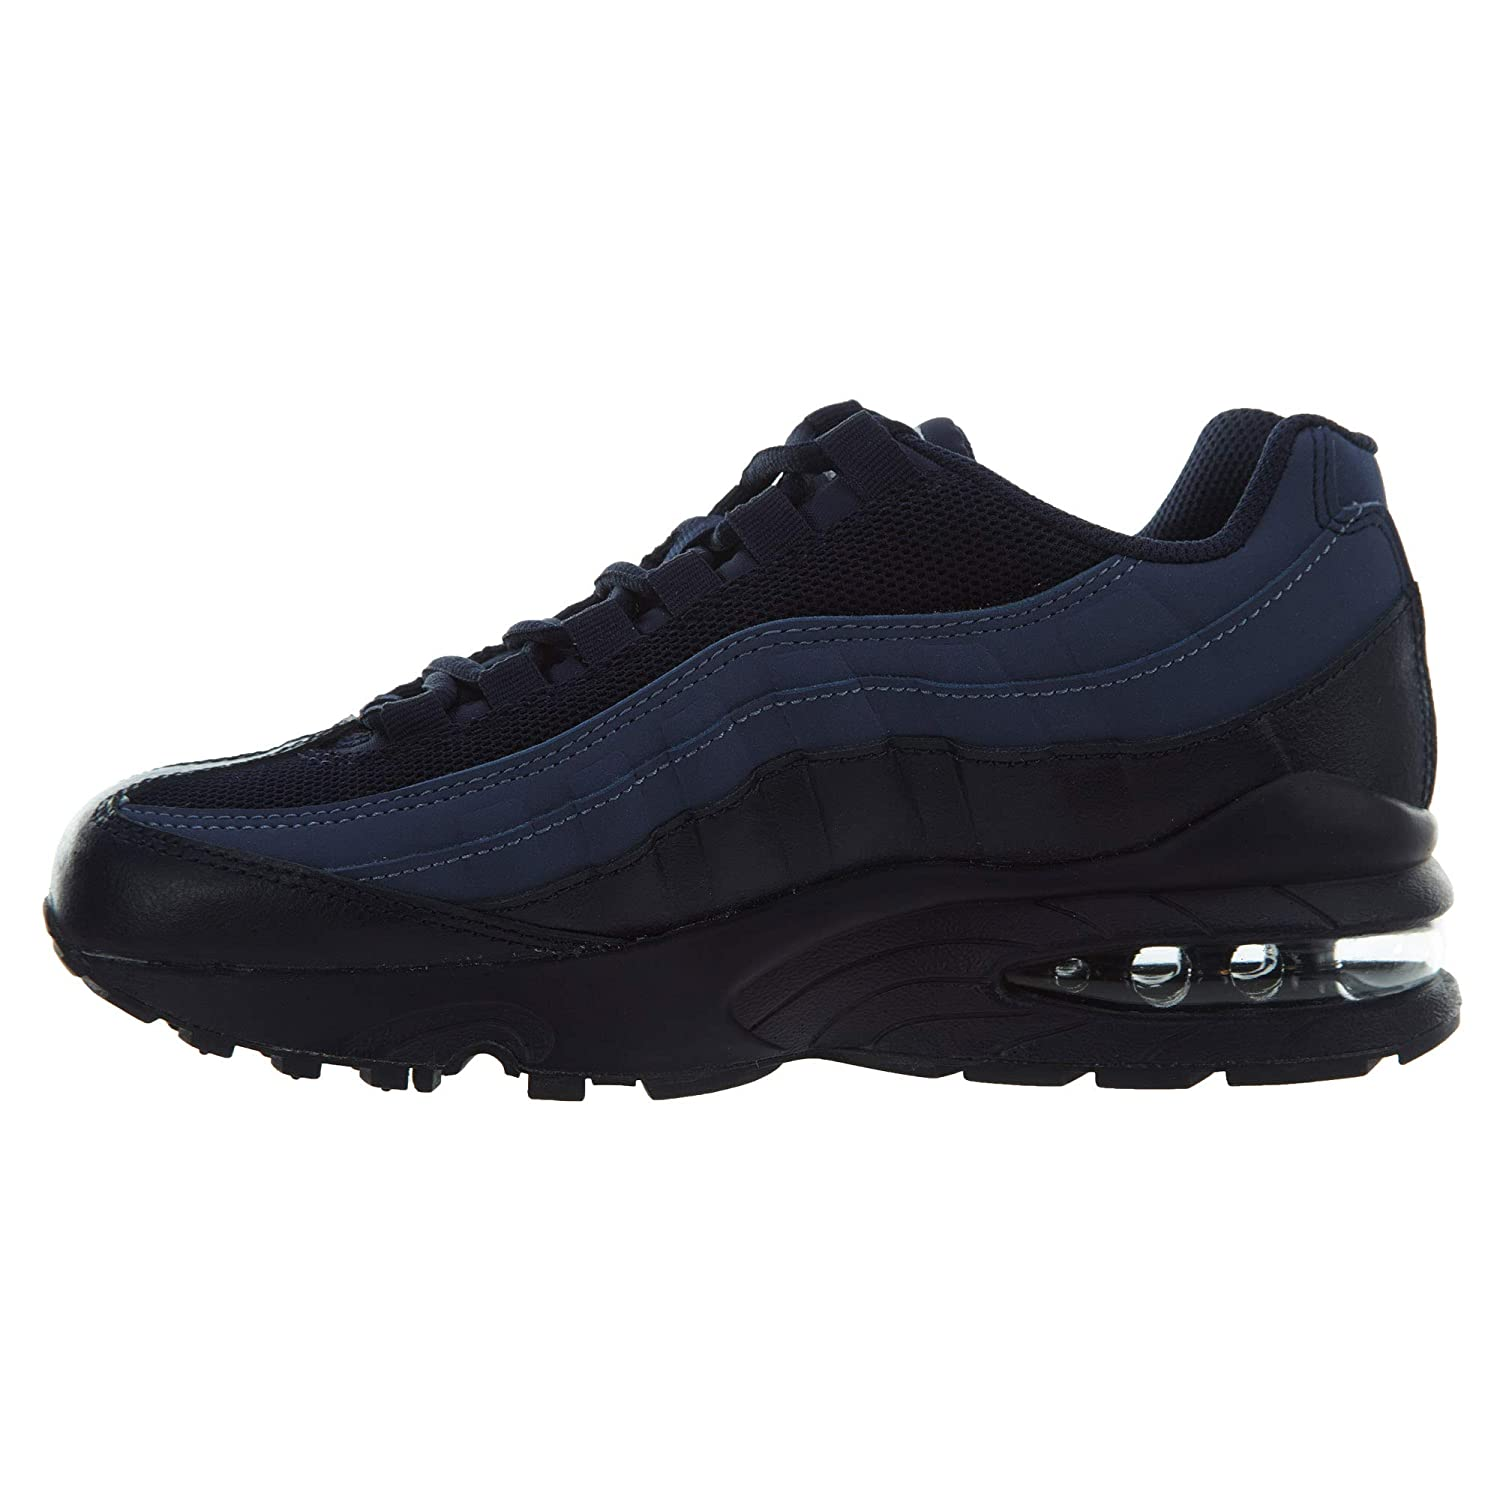 best authentic 2c8c9 33319 Amazon.com Nike Air Max 95 Nike Shoes